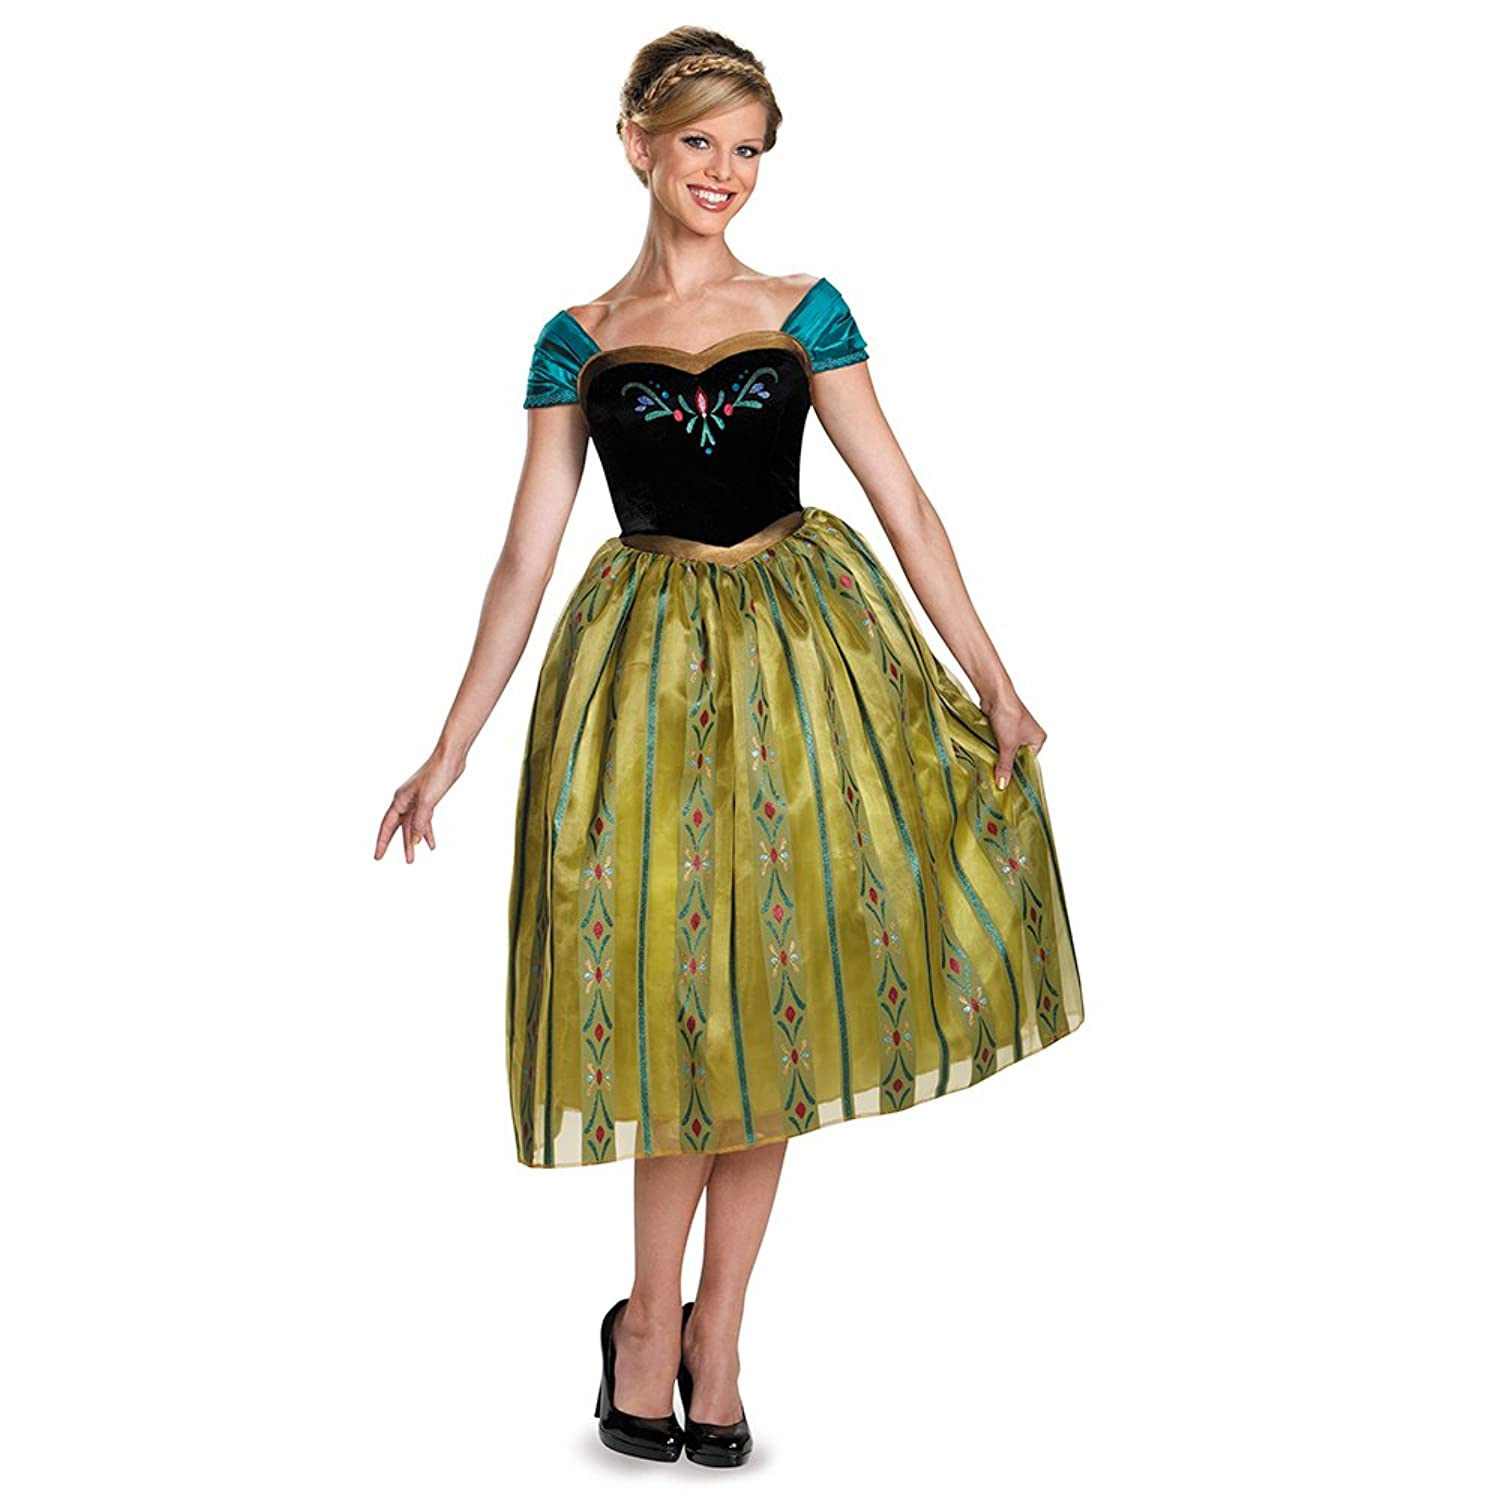 plus size dress up costumes australia 1996